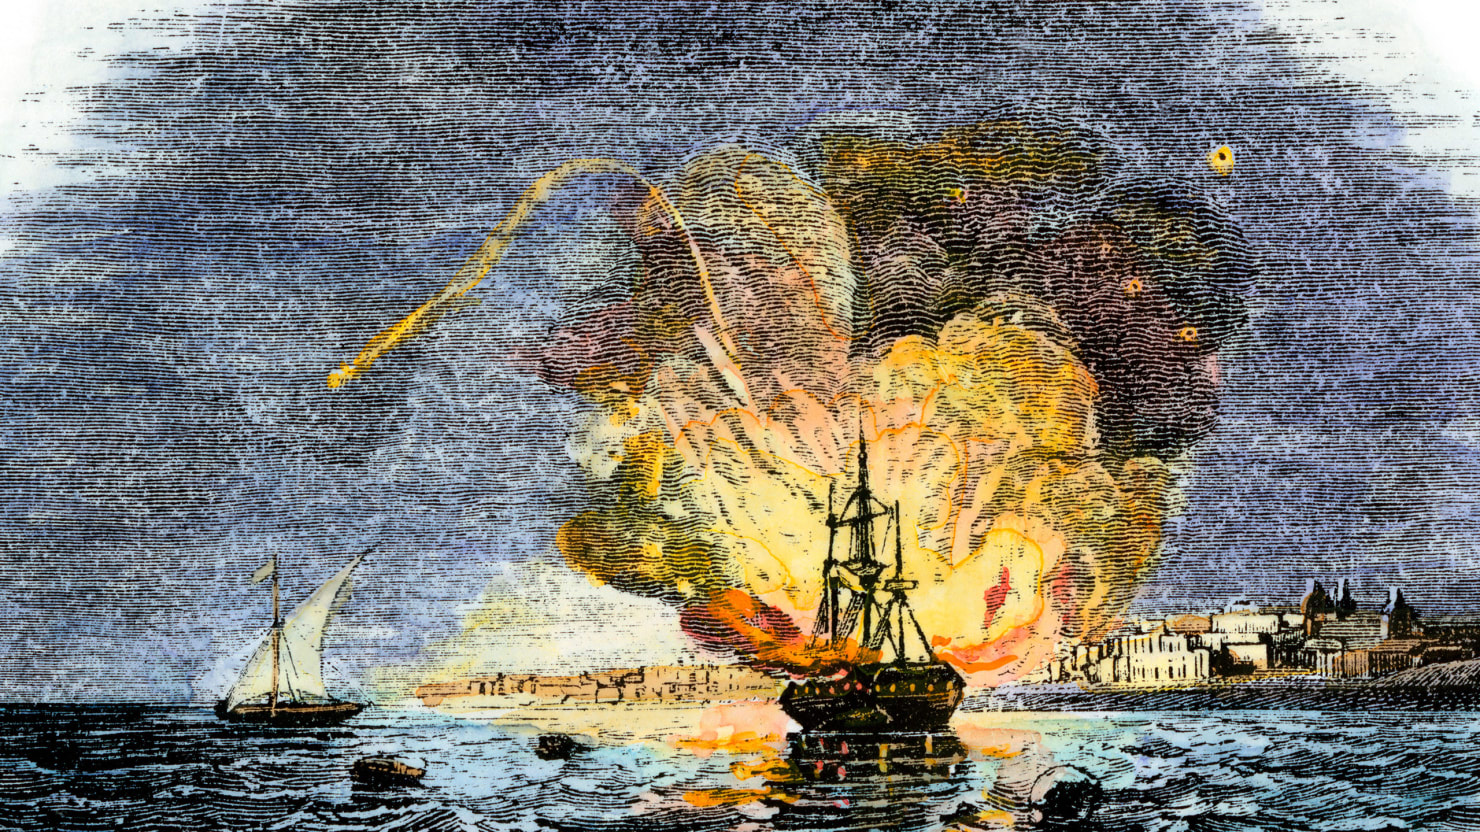 Before War on ISIS, There Was America's Second Barbary War